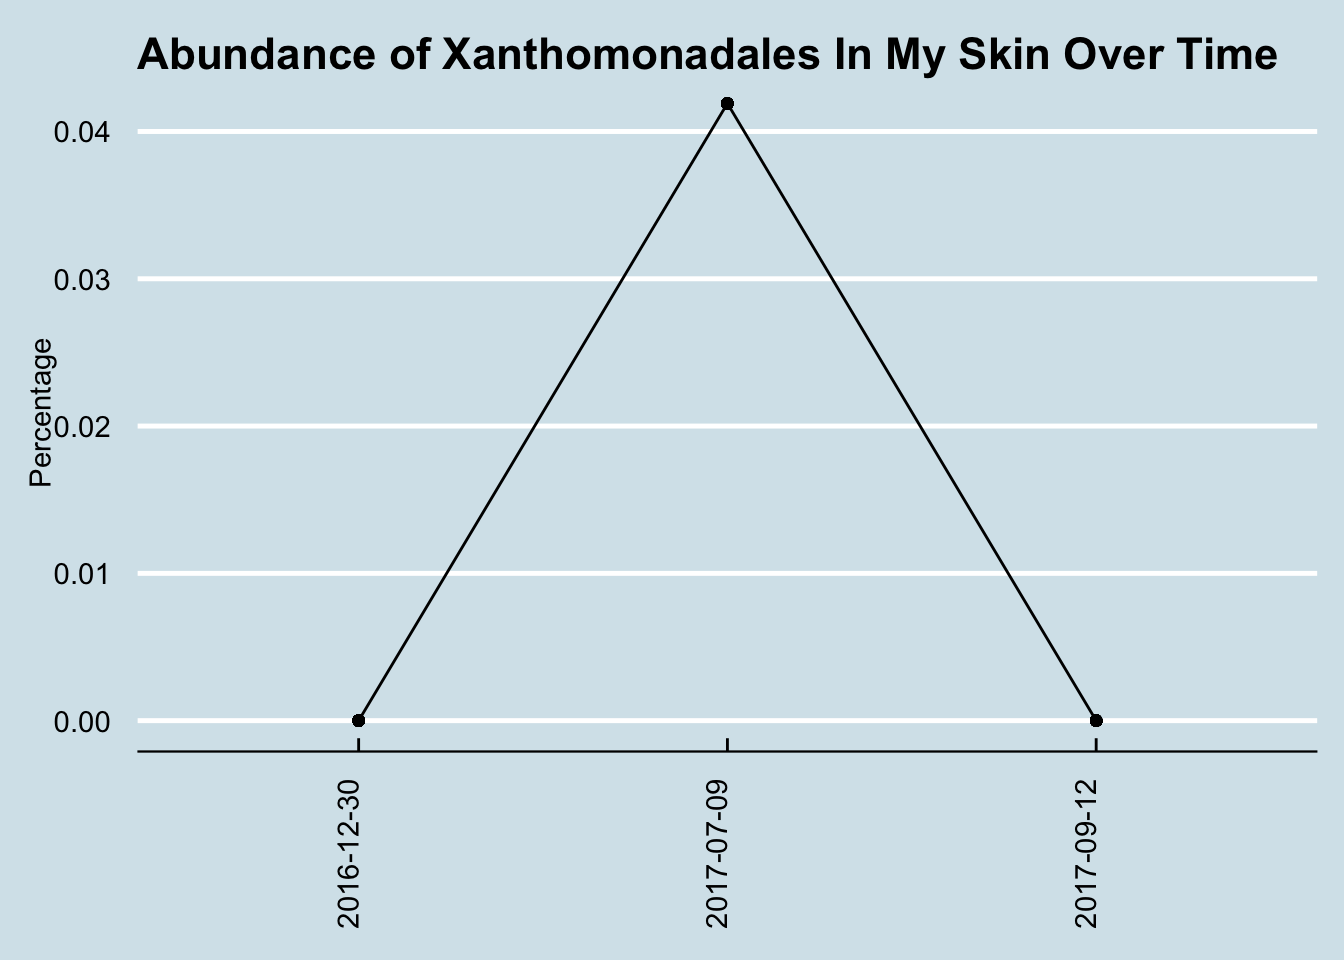 Levels of Xanthomonodales spiked for some unknown reason.